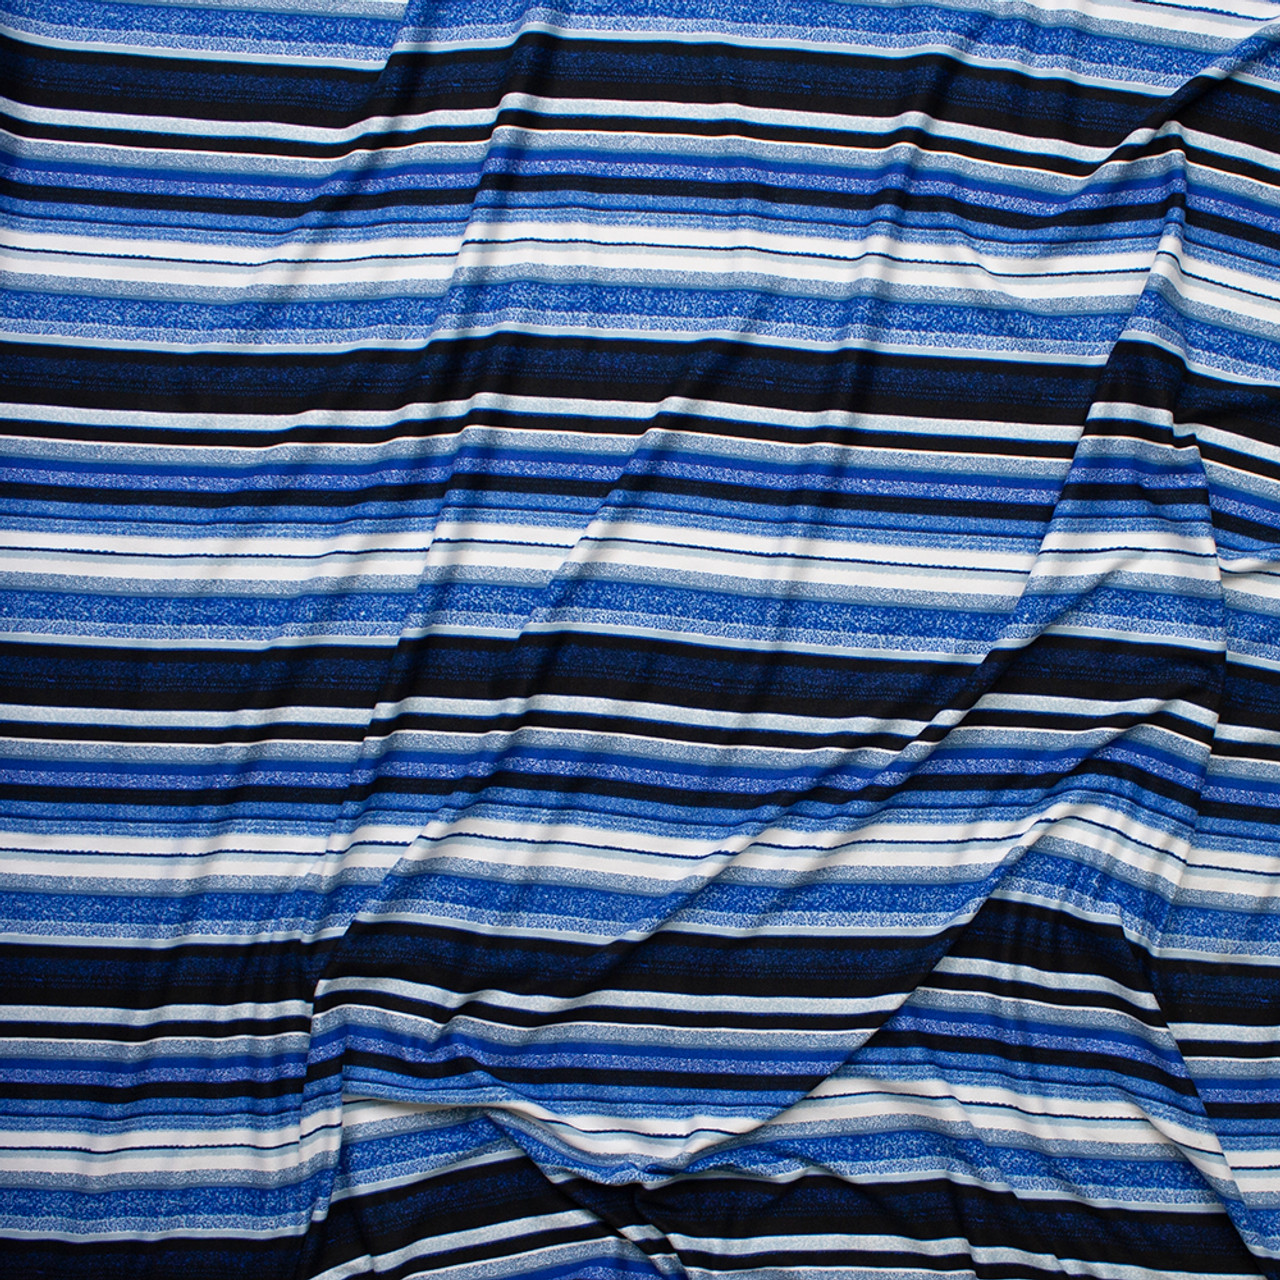 BLUE /& WHITE STRIPED POLY KNIT-64 INCH WIDE BY THE YARD